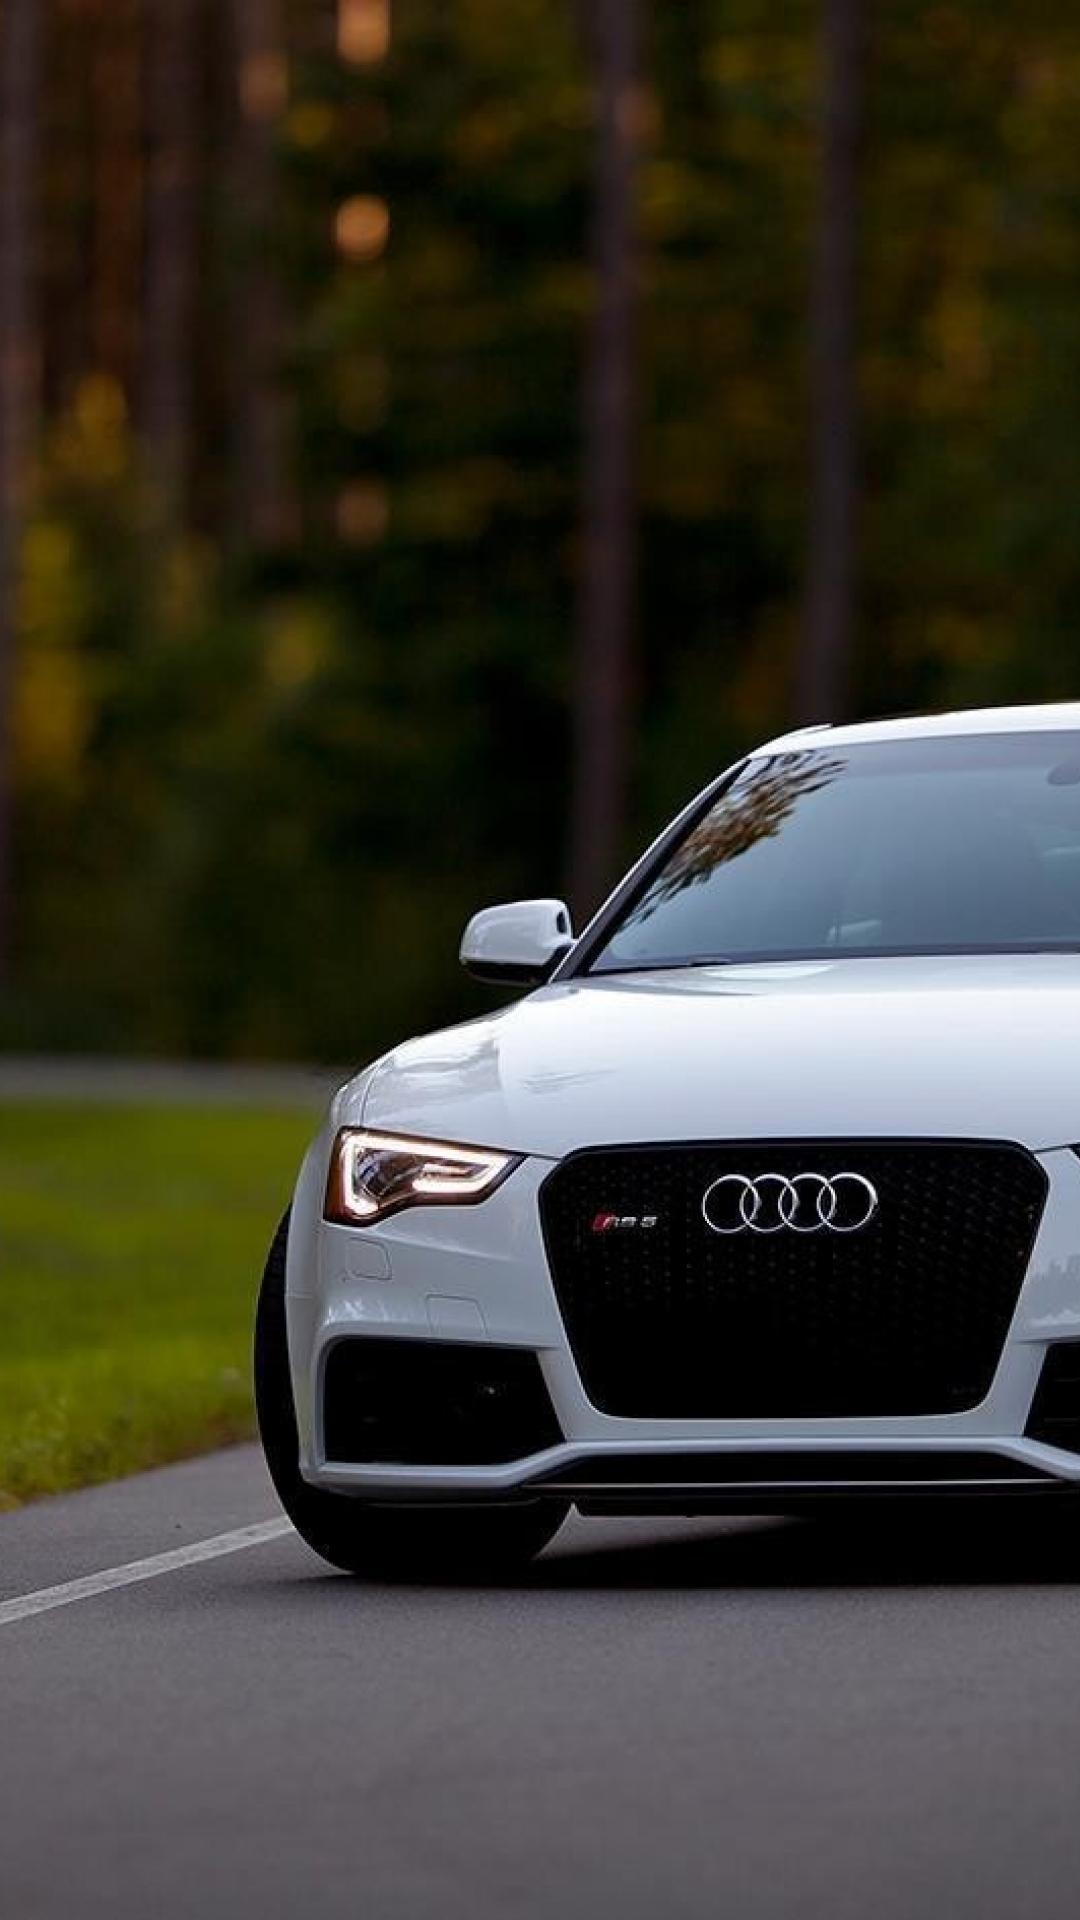 Car Wallpaper For Mobile - Audi Car Hd Wallpaper For Mobile , HD Wallpaper & Backgrounds